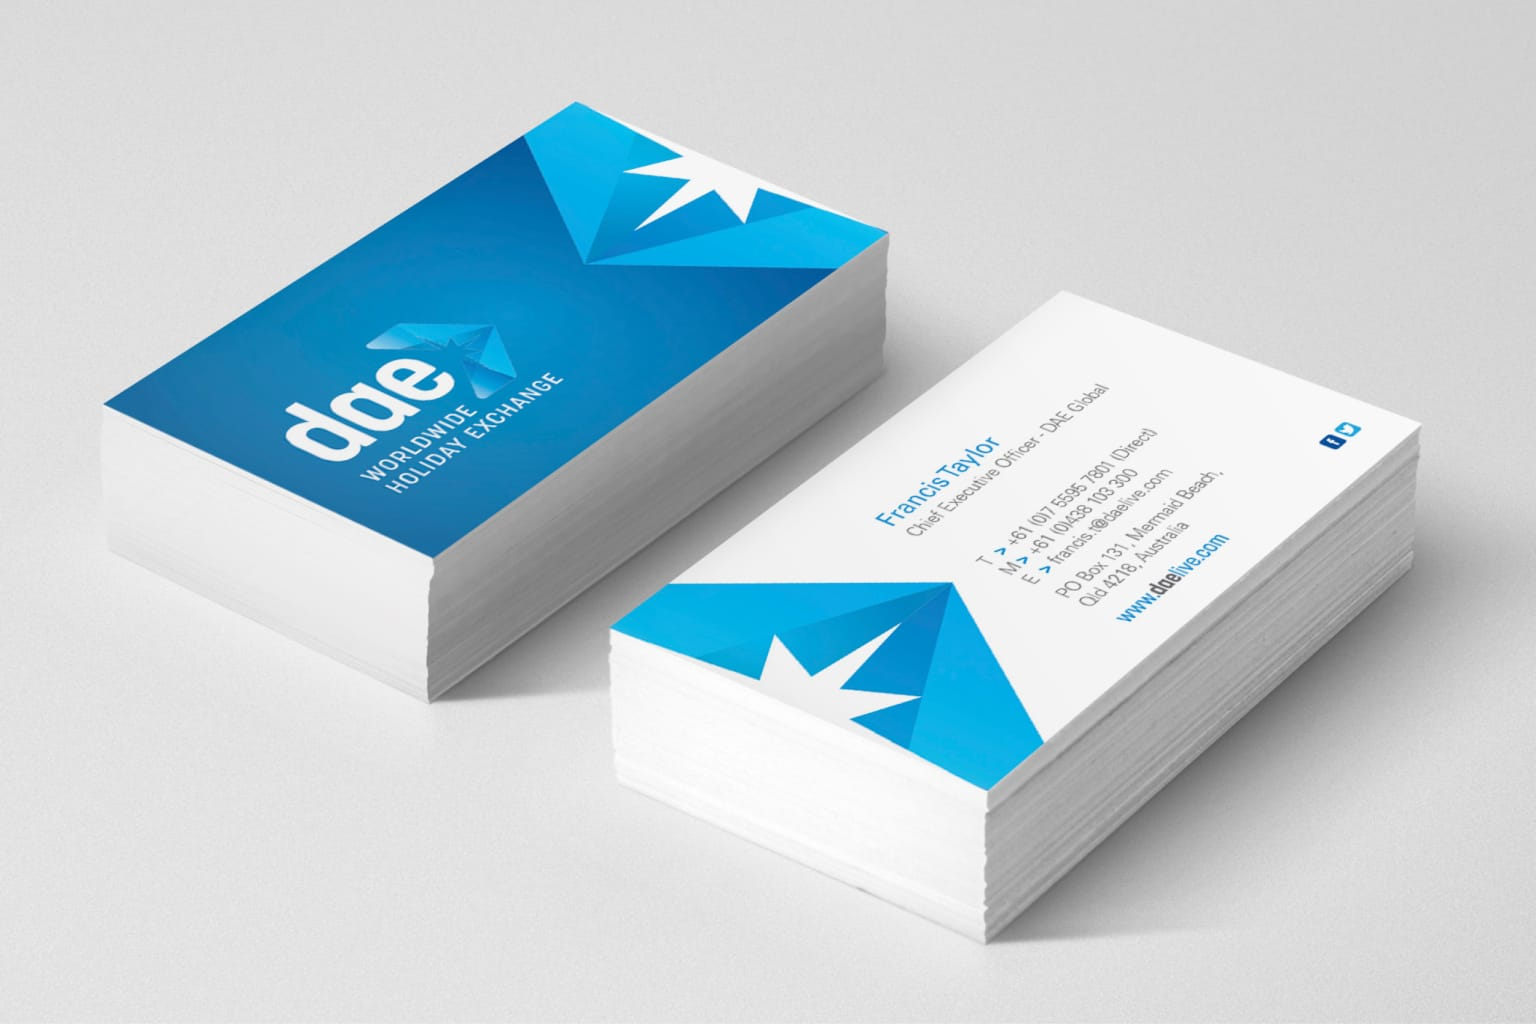 Dial An Exchange Identity & Branding